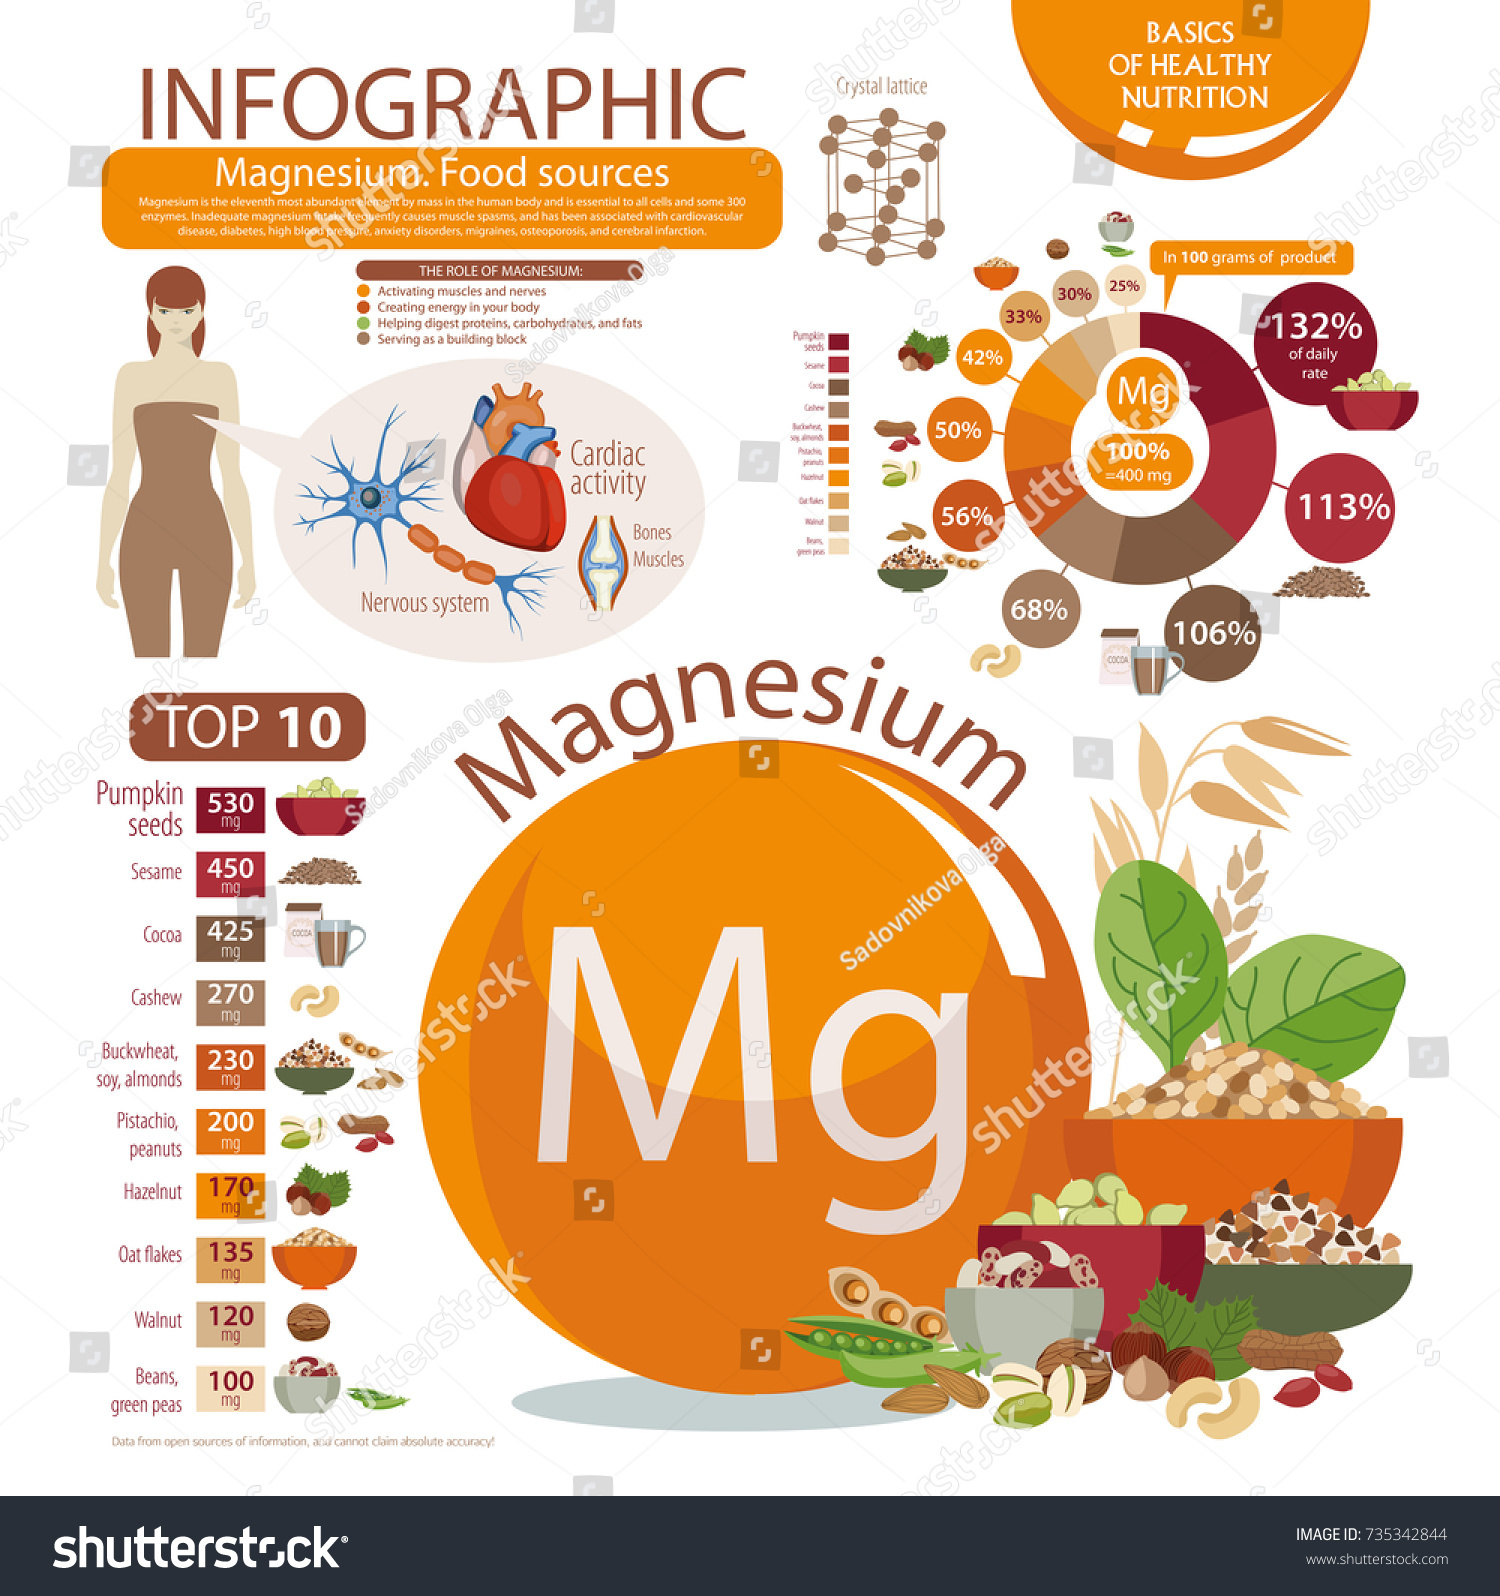 Infographics magnesium food sources pie chart stock vector food sources pie chart percent of daily allowance nvjuhfo Image collections